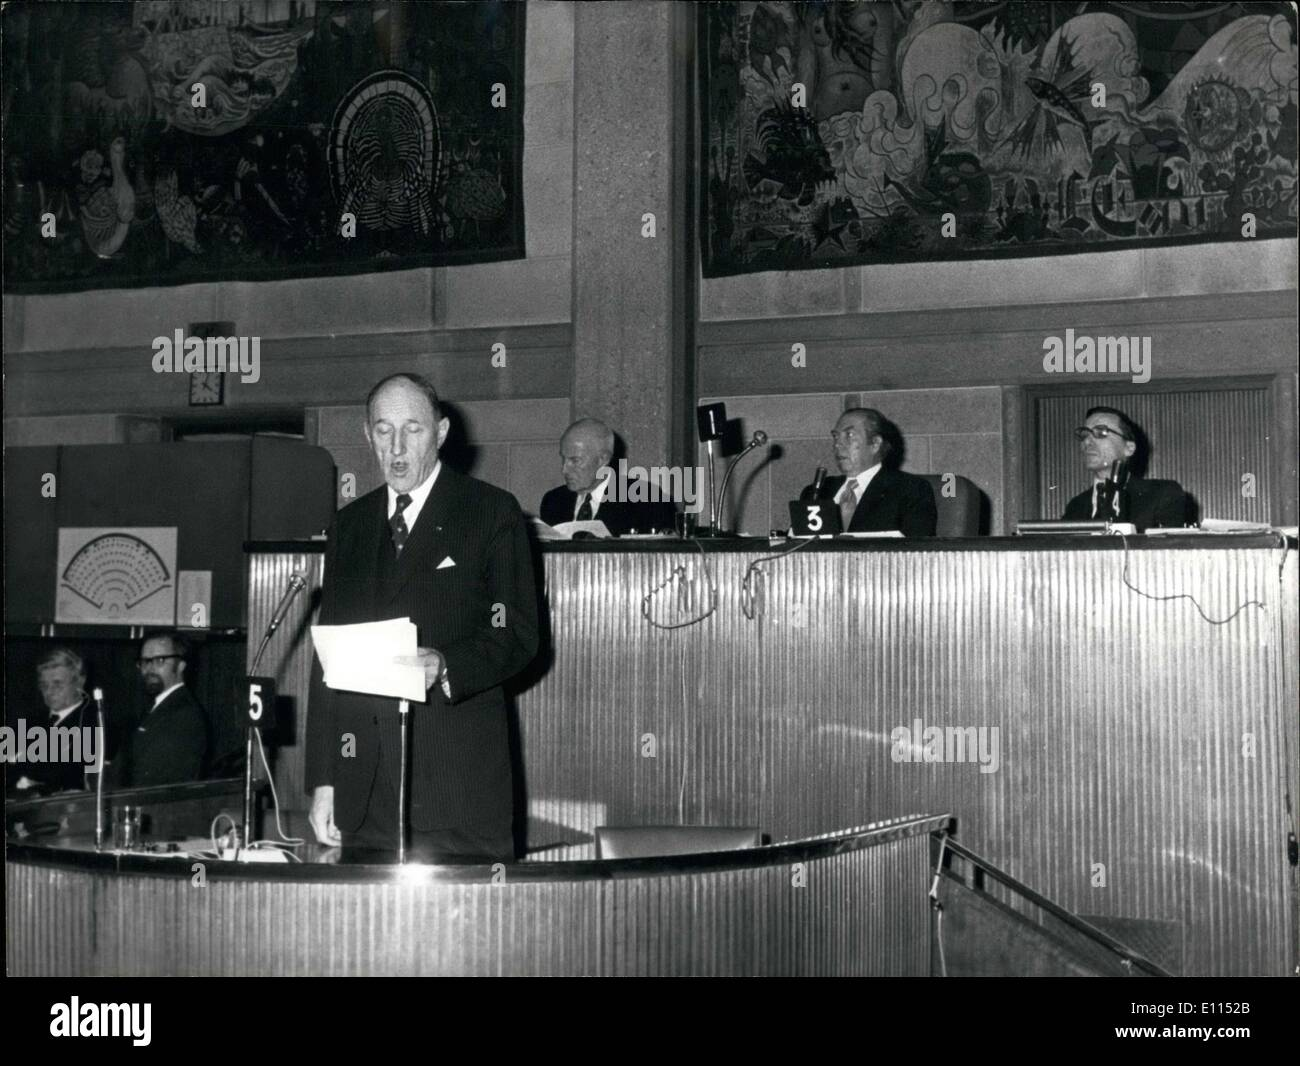 Dec. 08, 1975 - His speech was titled ''Western Europe & the Evolution of the Atlantic Alliance''. He gave it at the 21st ordinary session of the Western European Union that was held at Iena Palace in Paris. - Stock Image